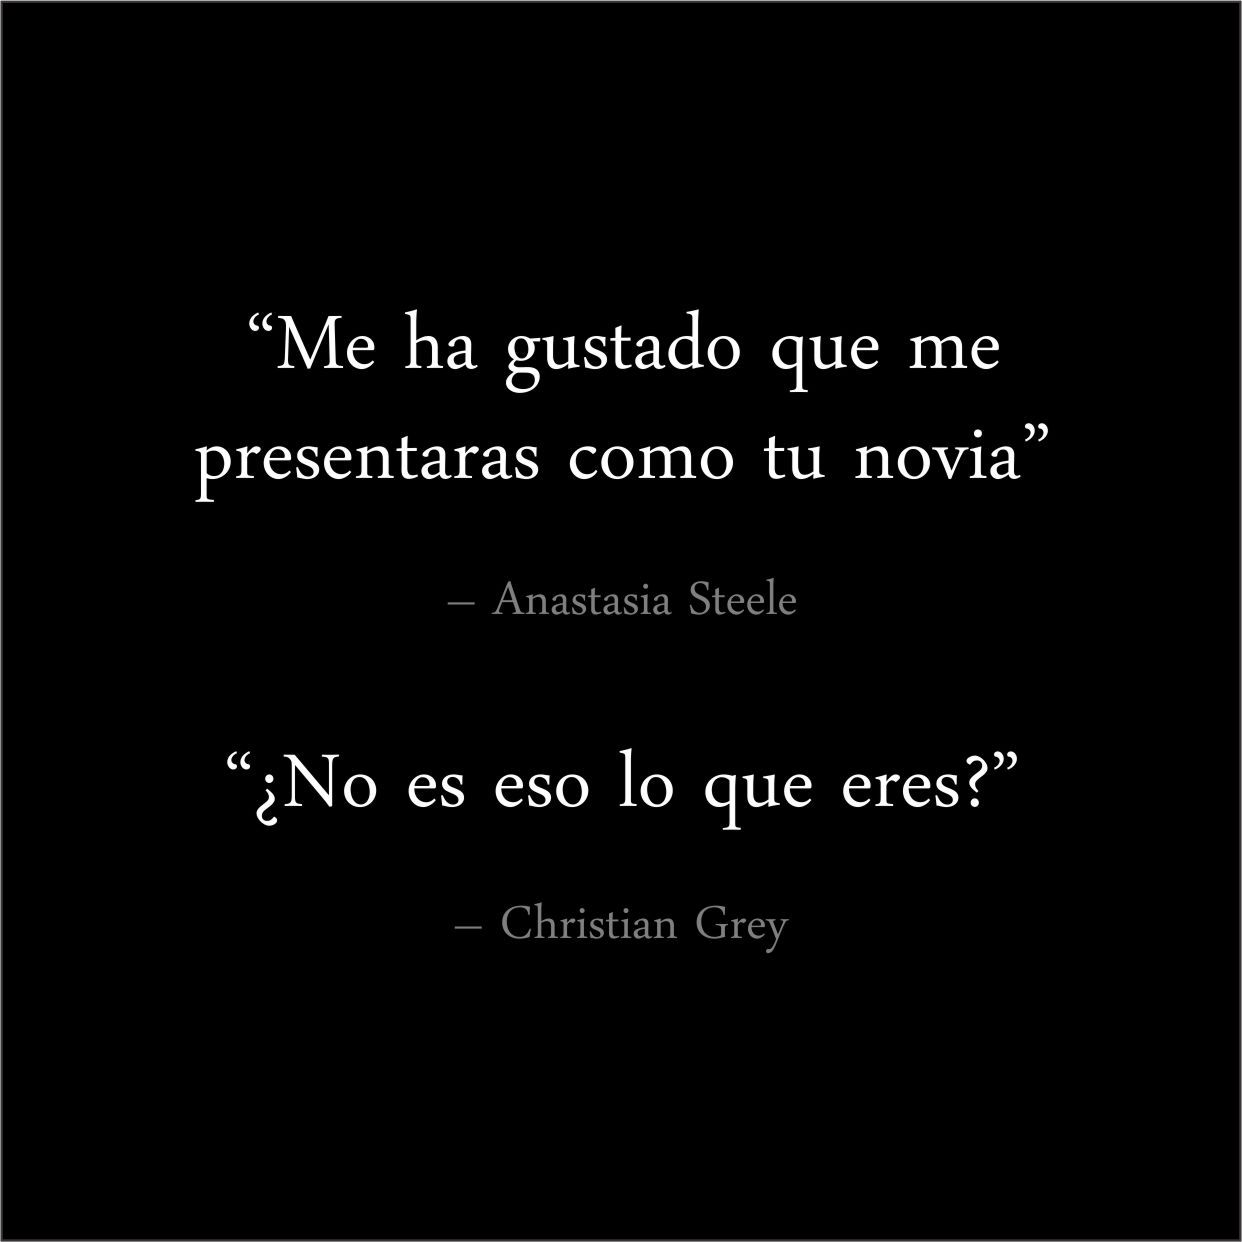 Libro Cincuenta Sombras De Grey Pdf 50 Sombras De Grey Fifty Shades Of Grey 50 Sombras De